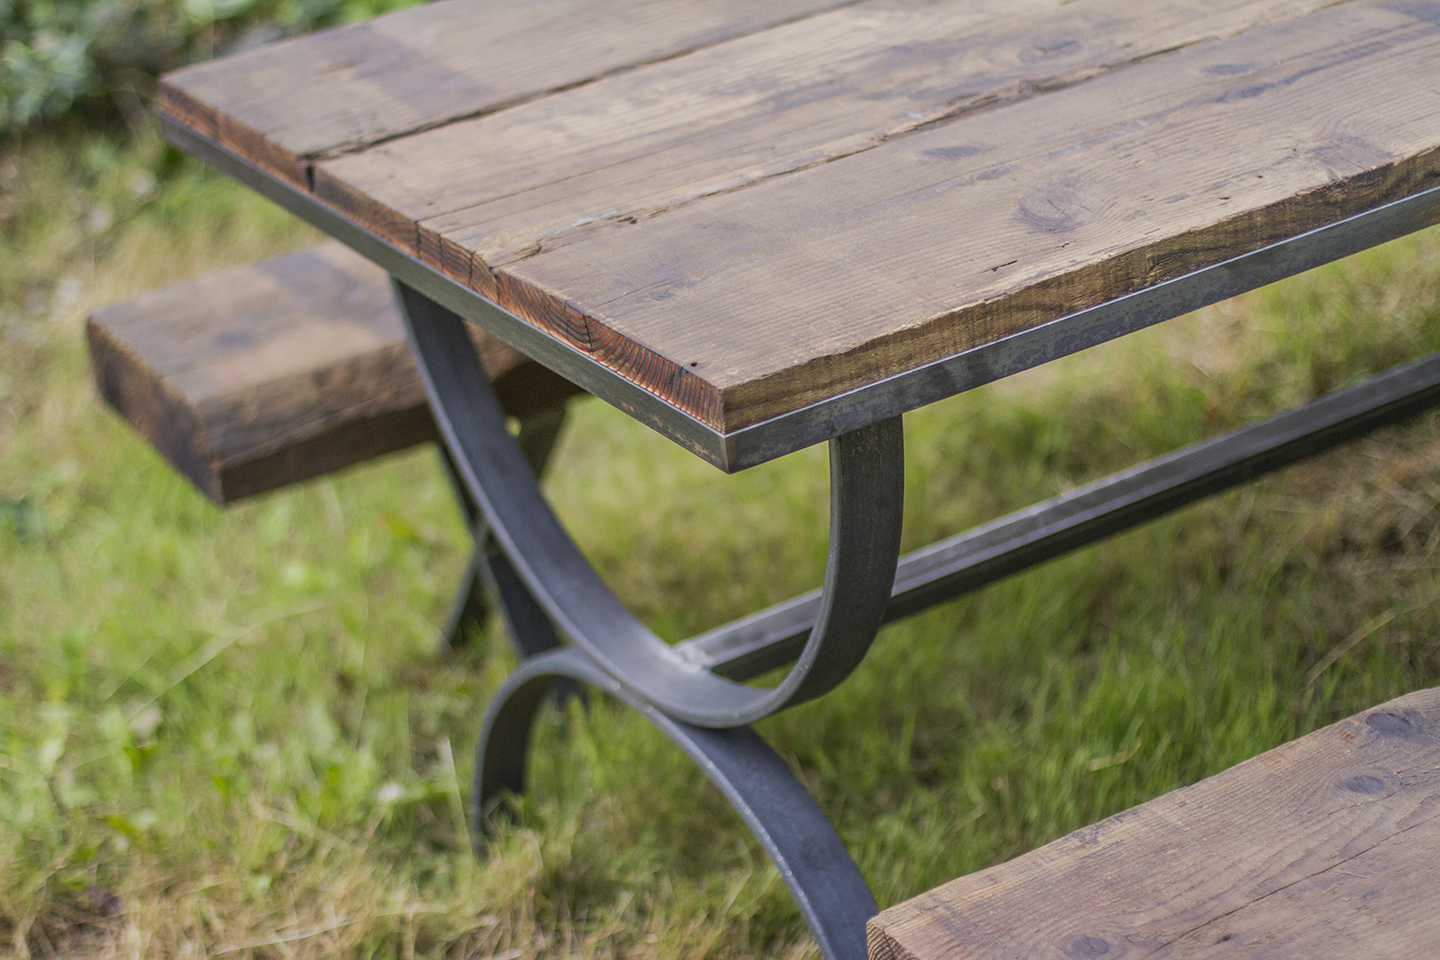 Felix Madrid Of Quiver Machine Works And I Were Approached To Design And  Build A Heavy Duty Outdoor Picnic Table. A Lovely Couple From The Denver  Area Just ...